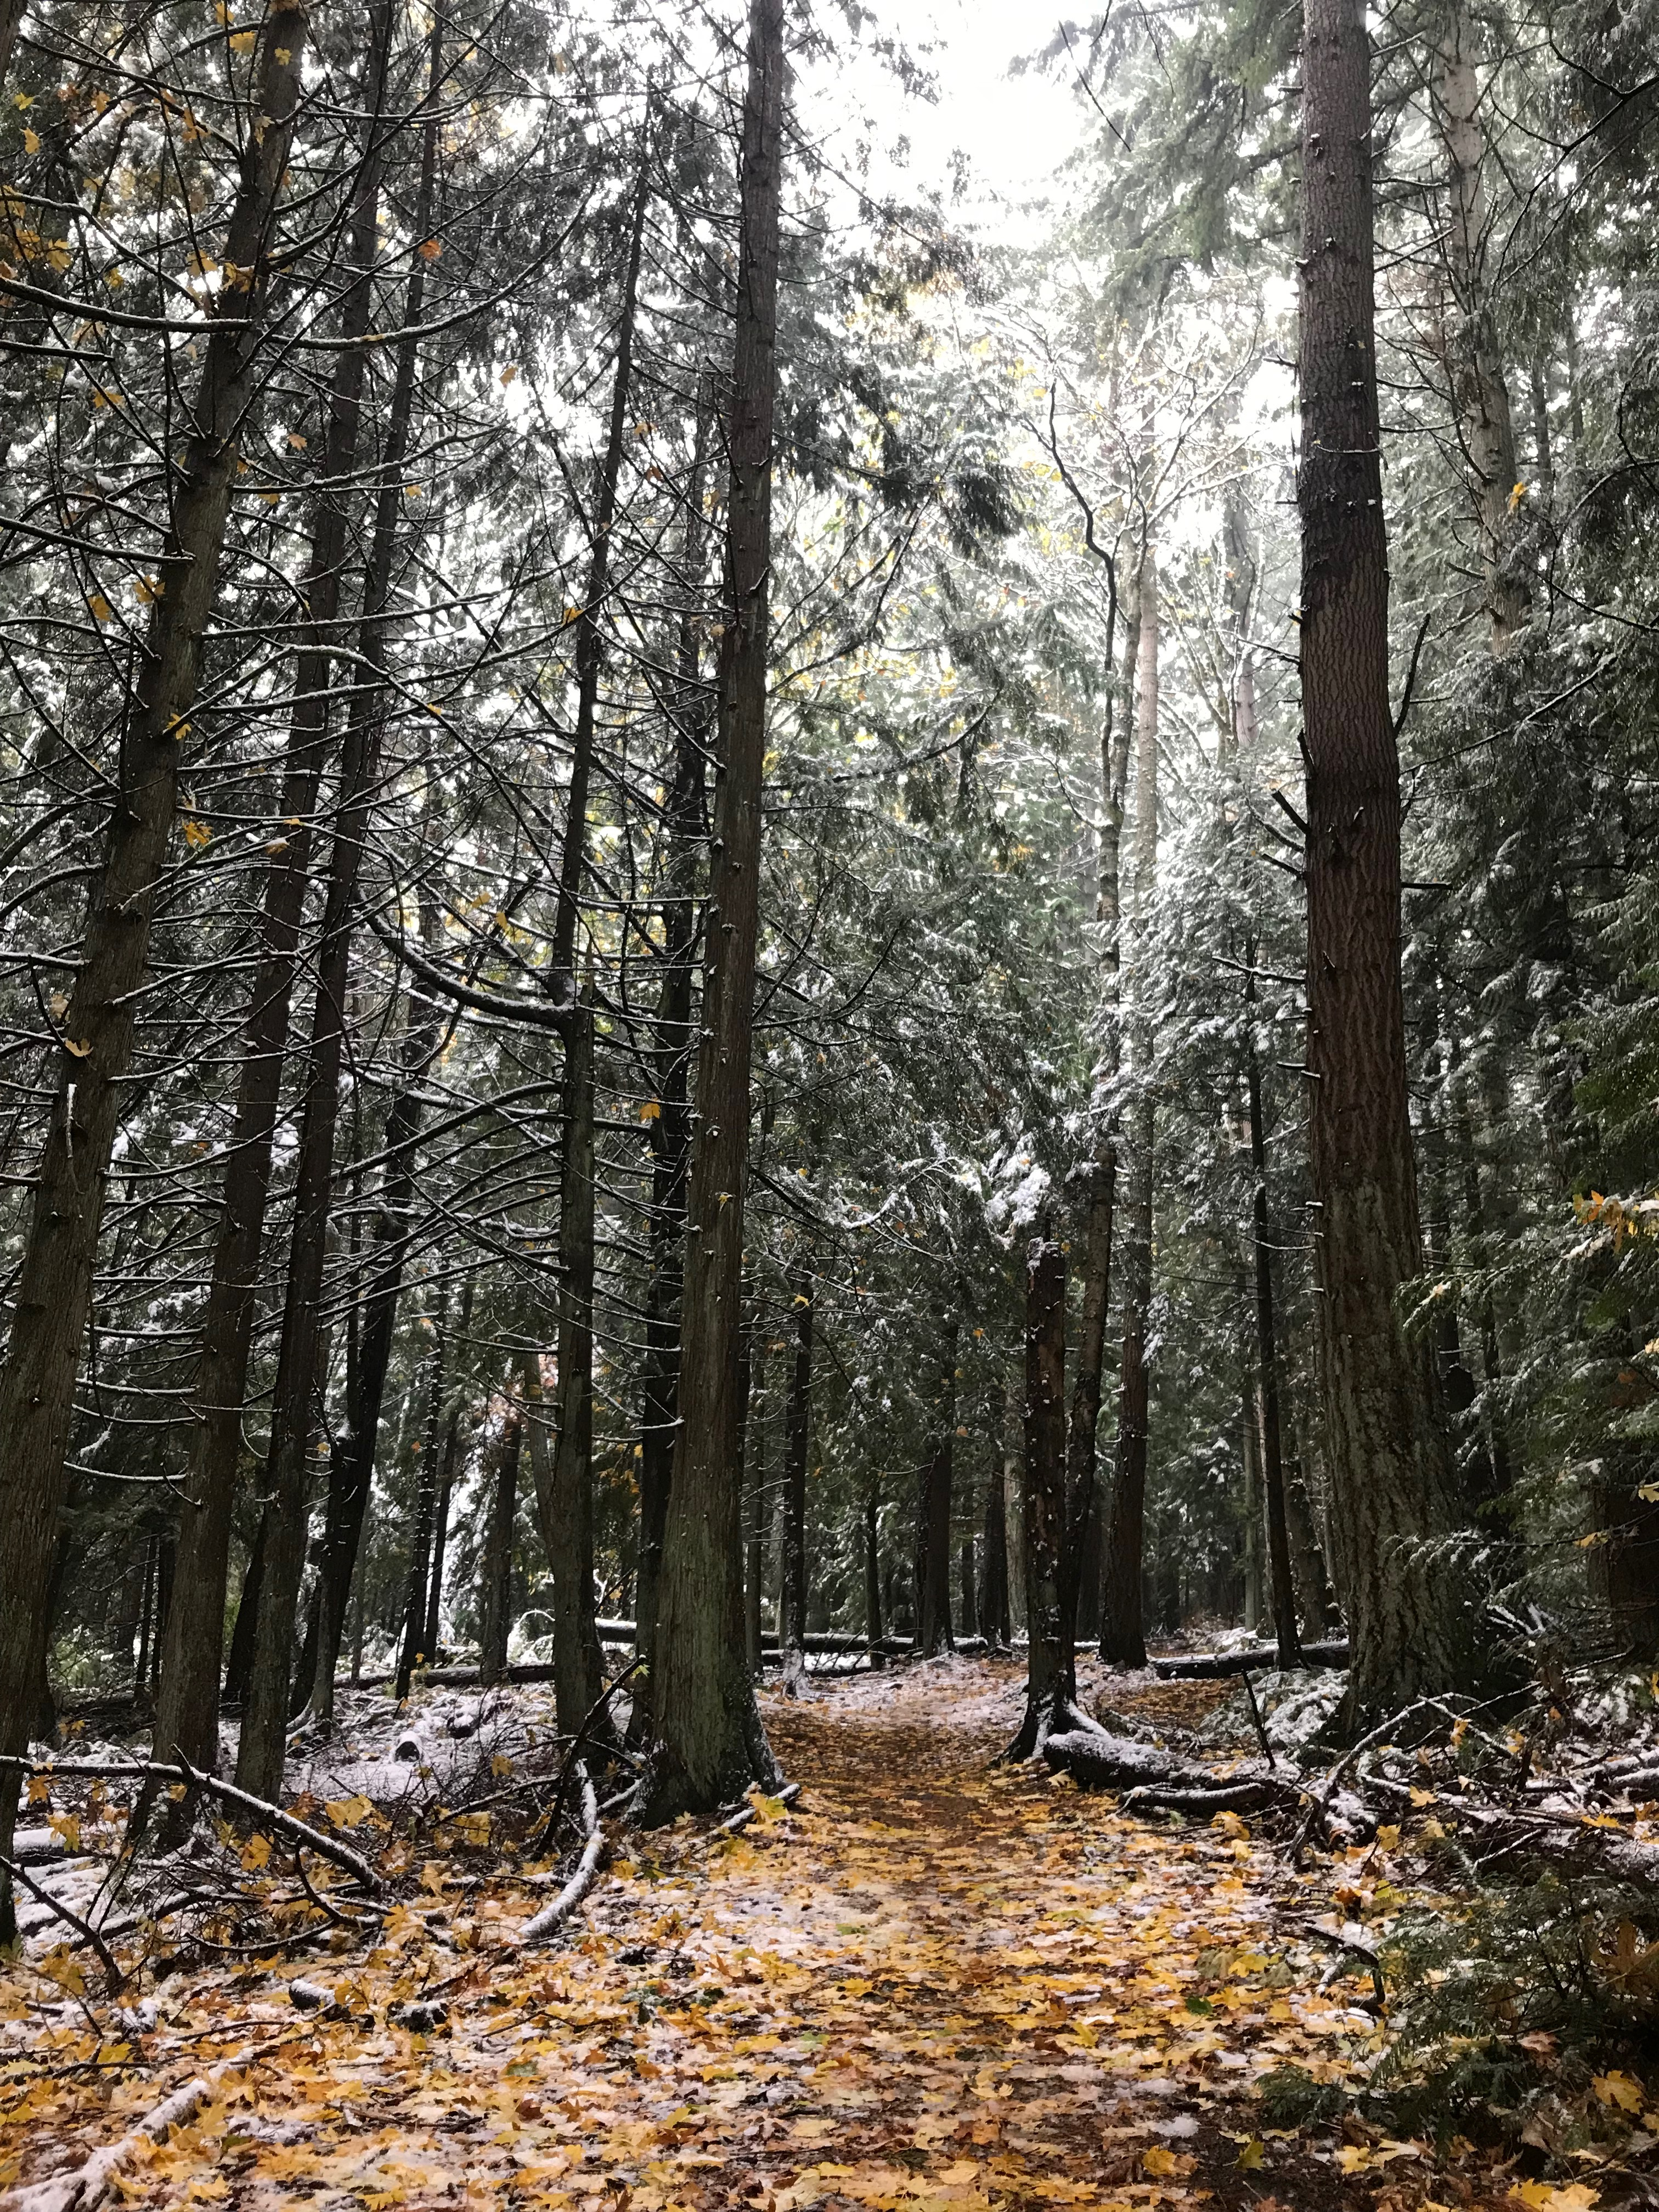 Snowy woods: Chuckanut trail system with snow on the ground, Bellingham, WA